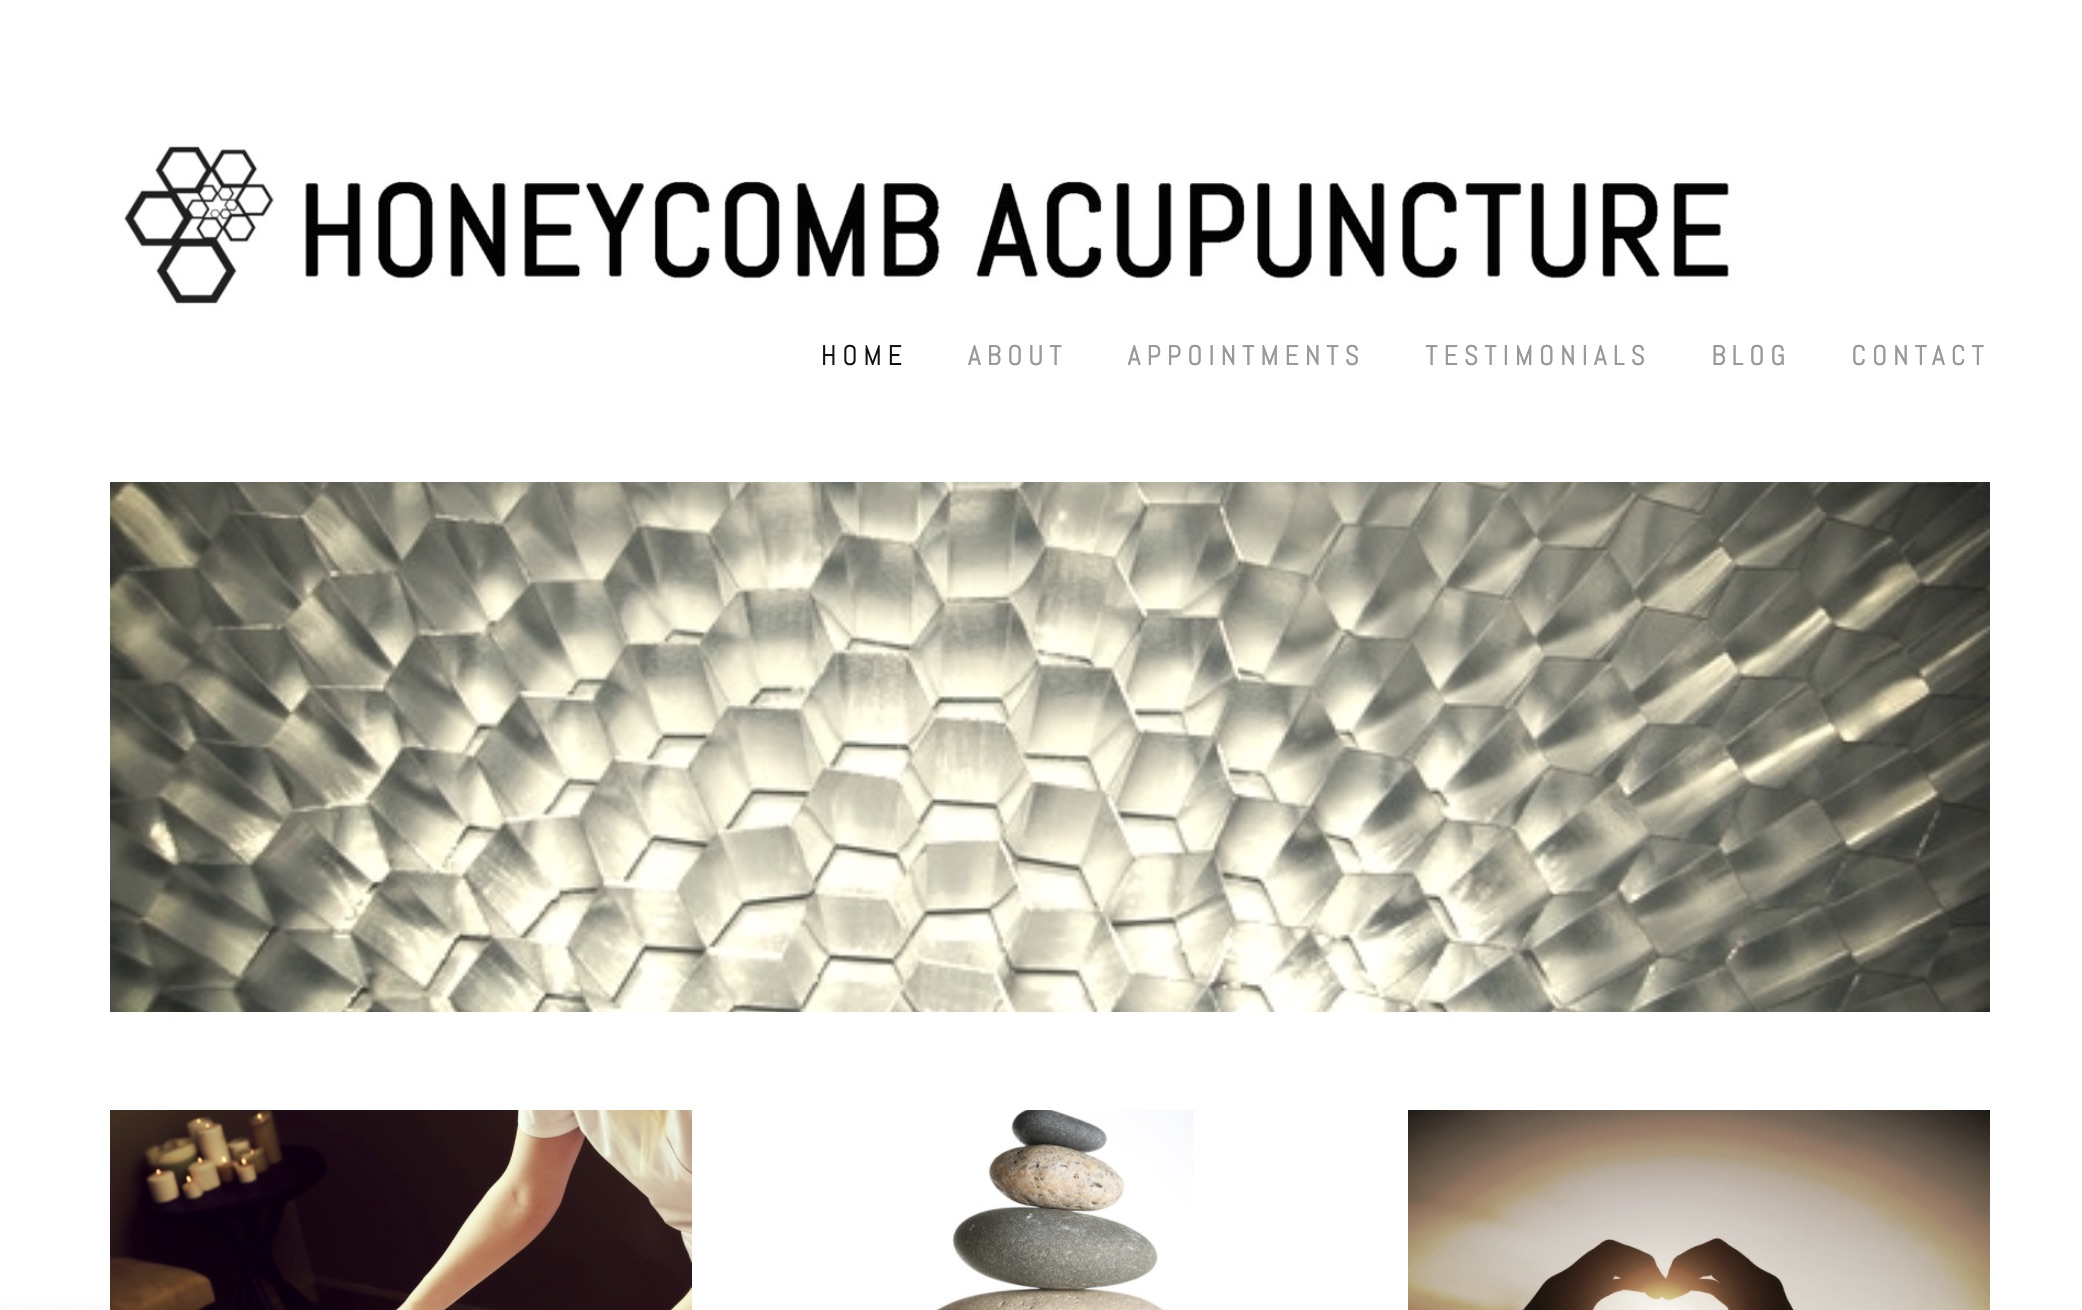 acupuncture website design berkeley